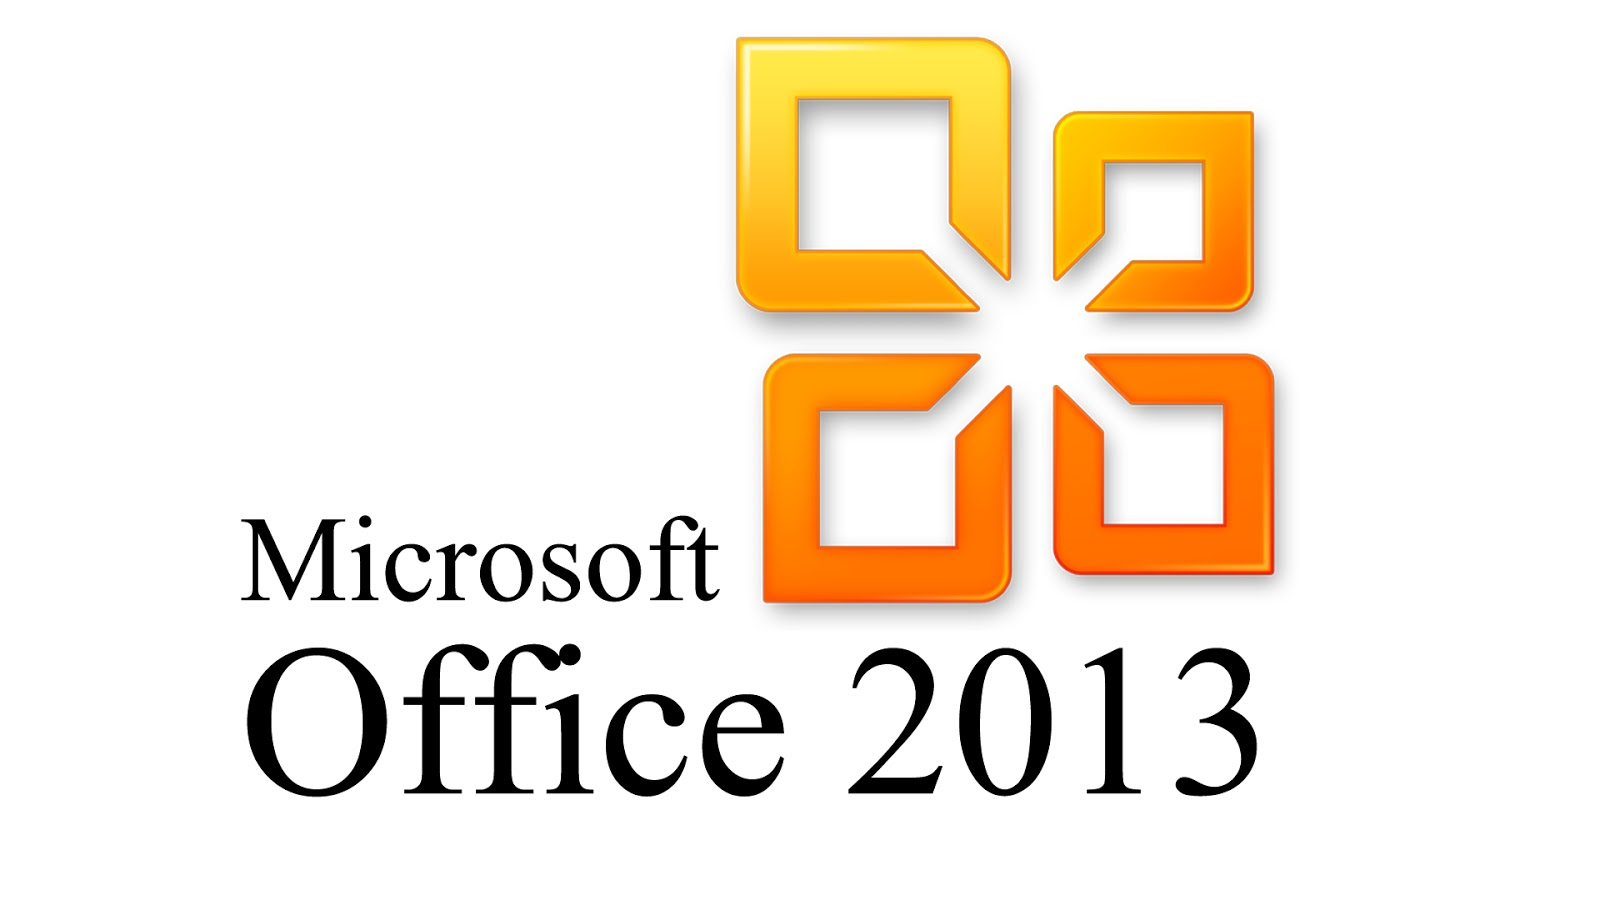 Microsoft Office 2013 Free Download For Windows 7810 Free Games